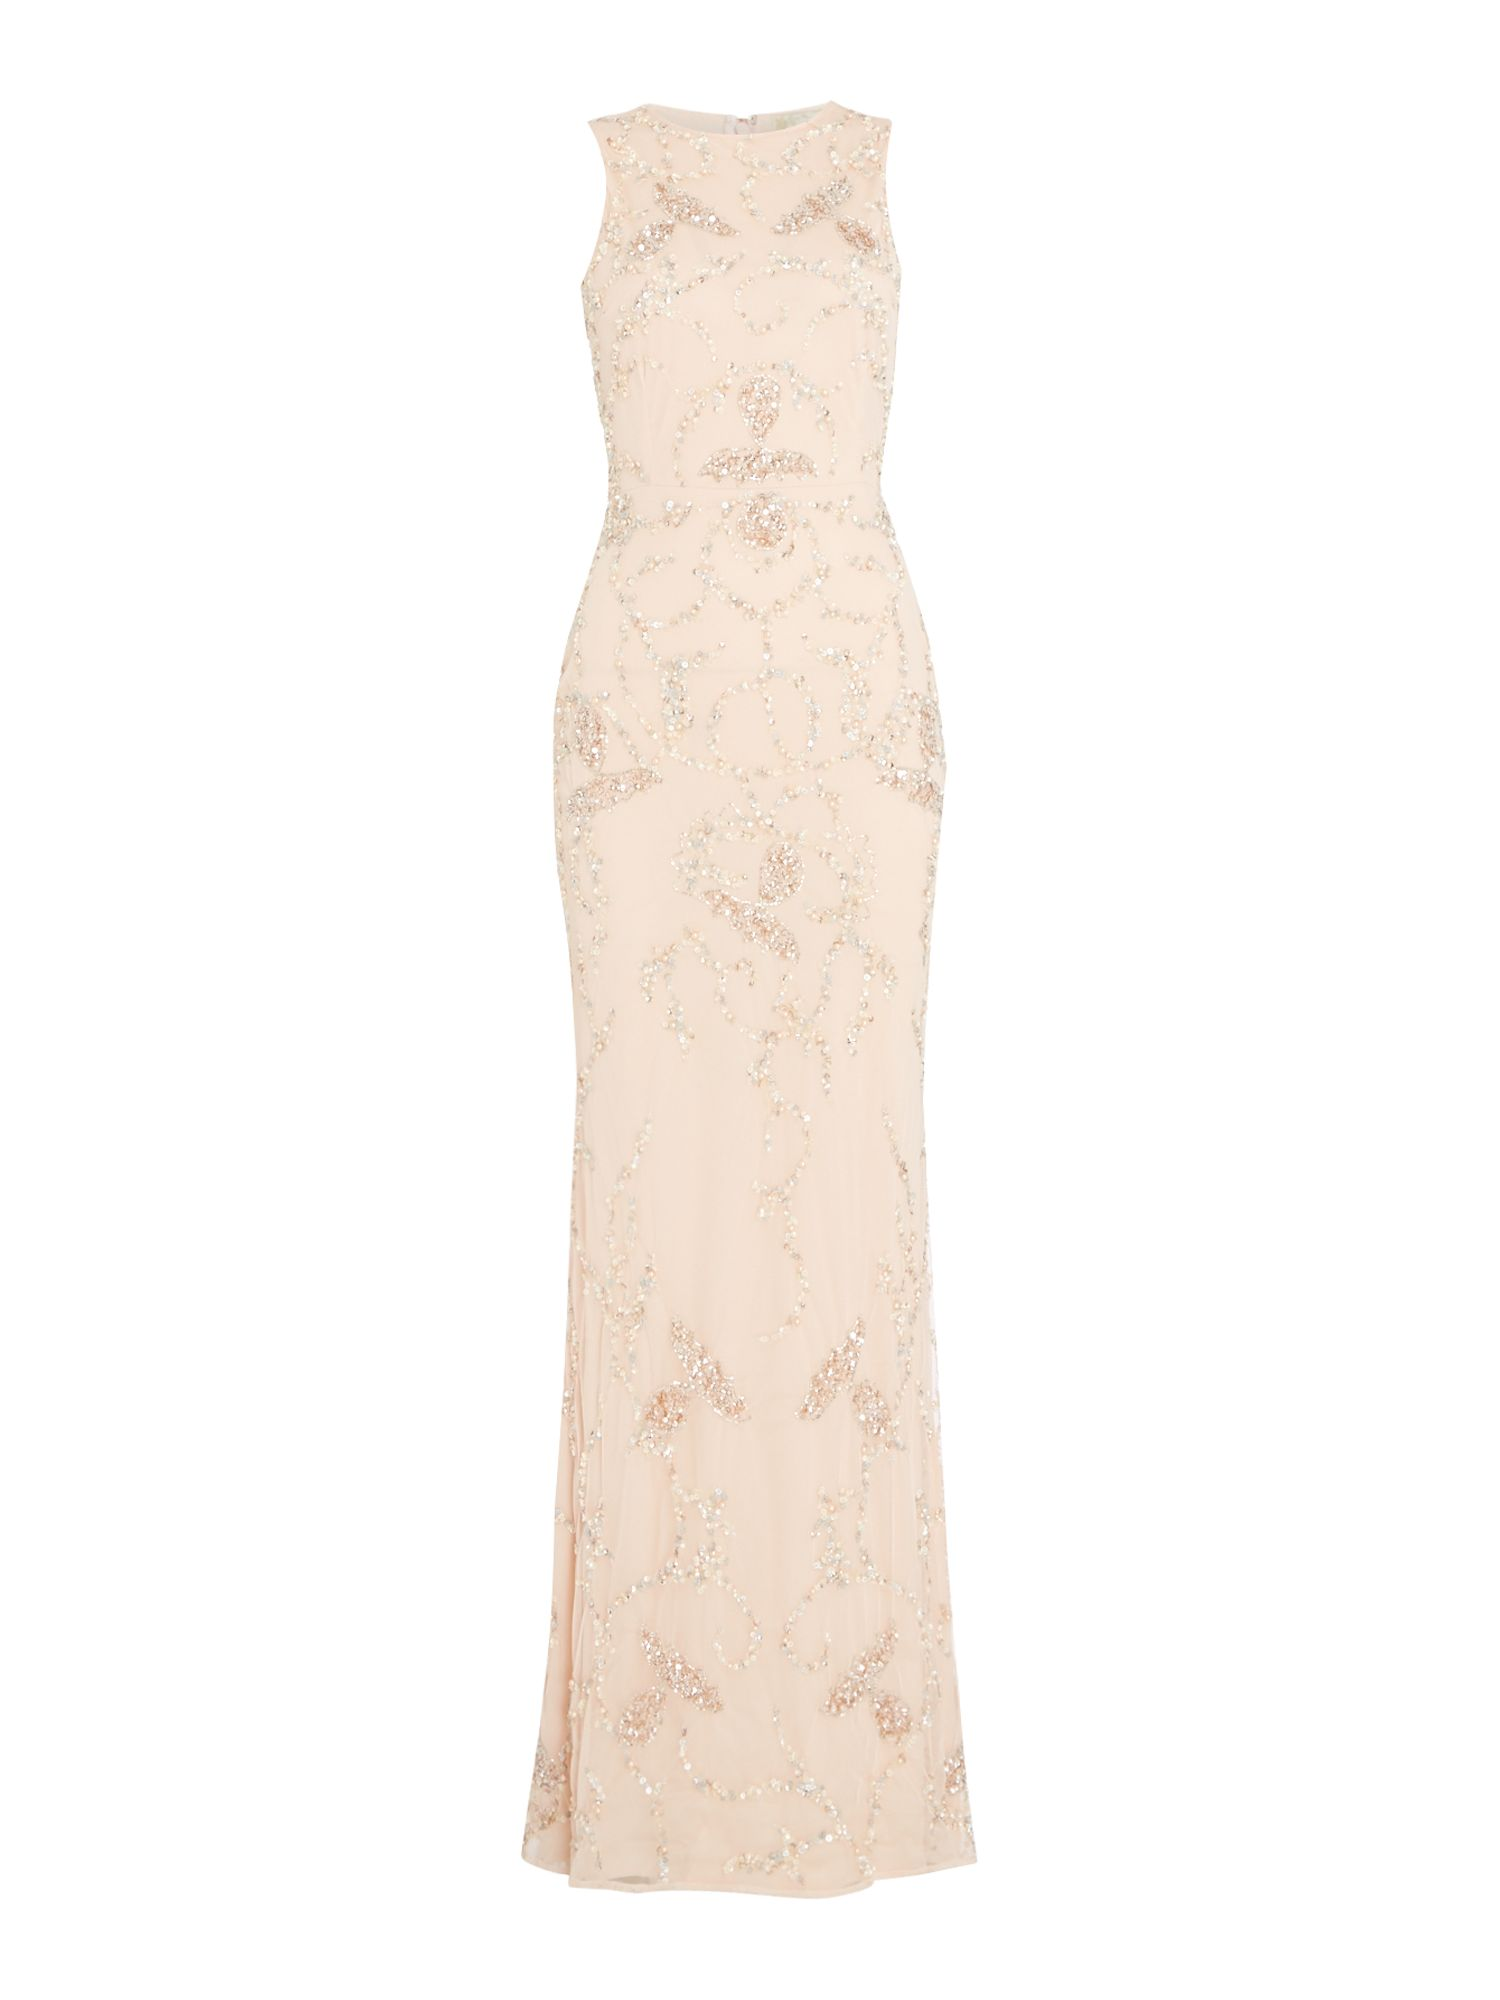 Lace and Beads Round neck embellished gown, Nude